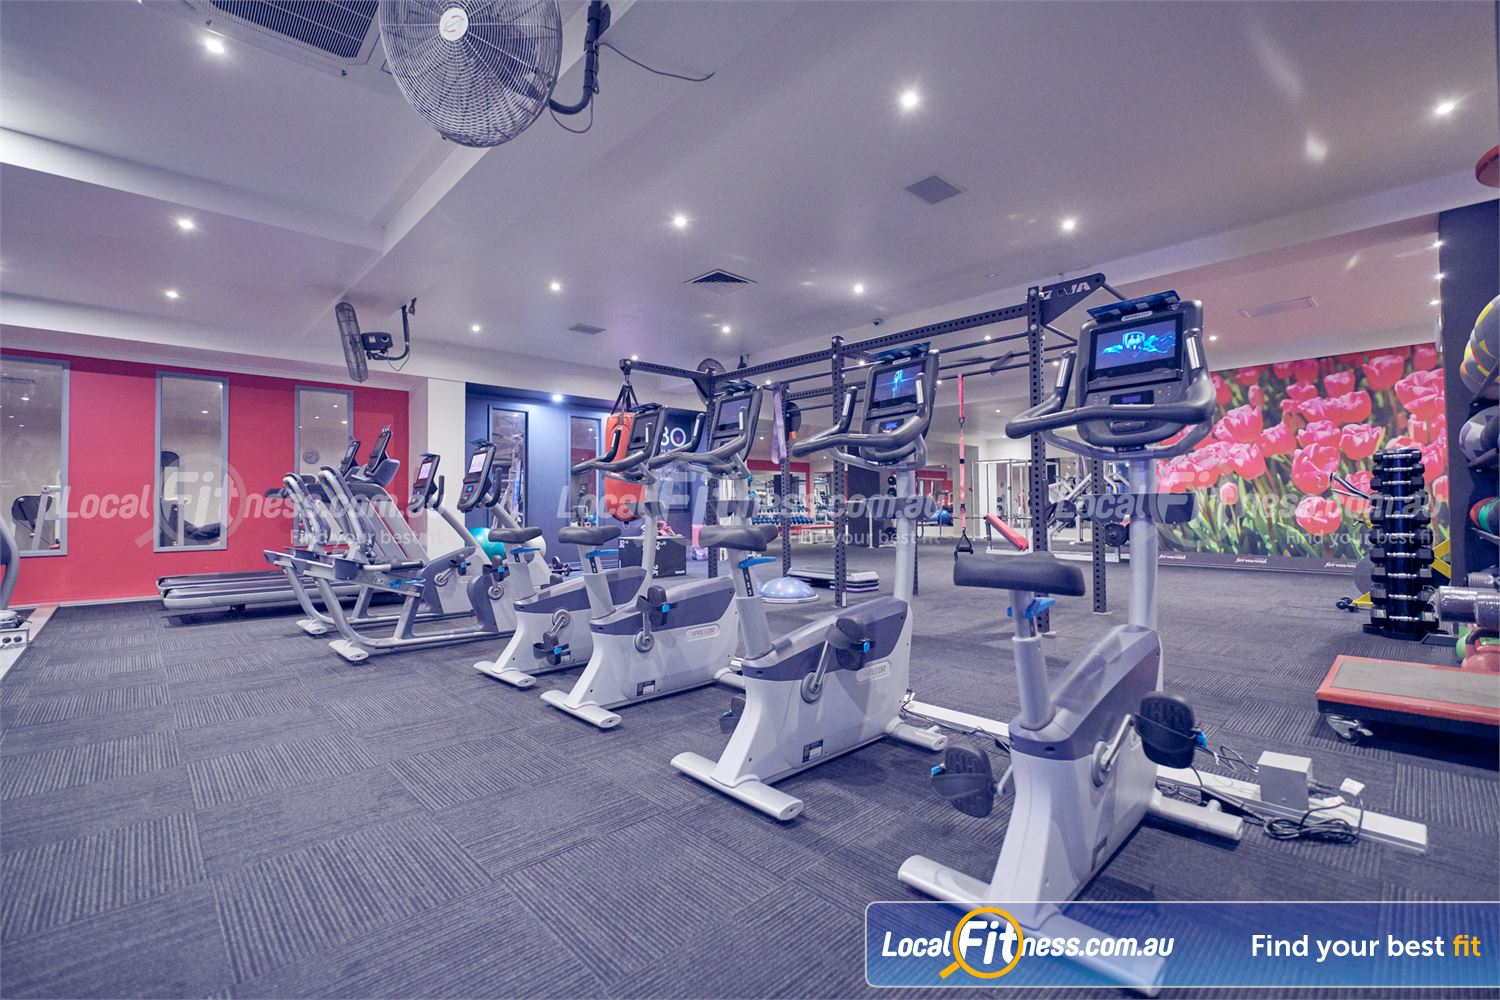 Fernwood Fitness Near Templestowe Lower Rows and rows of cardio machines so you don't have to wait.